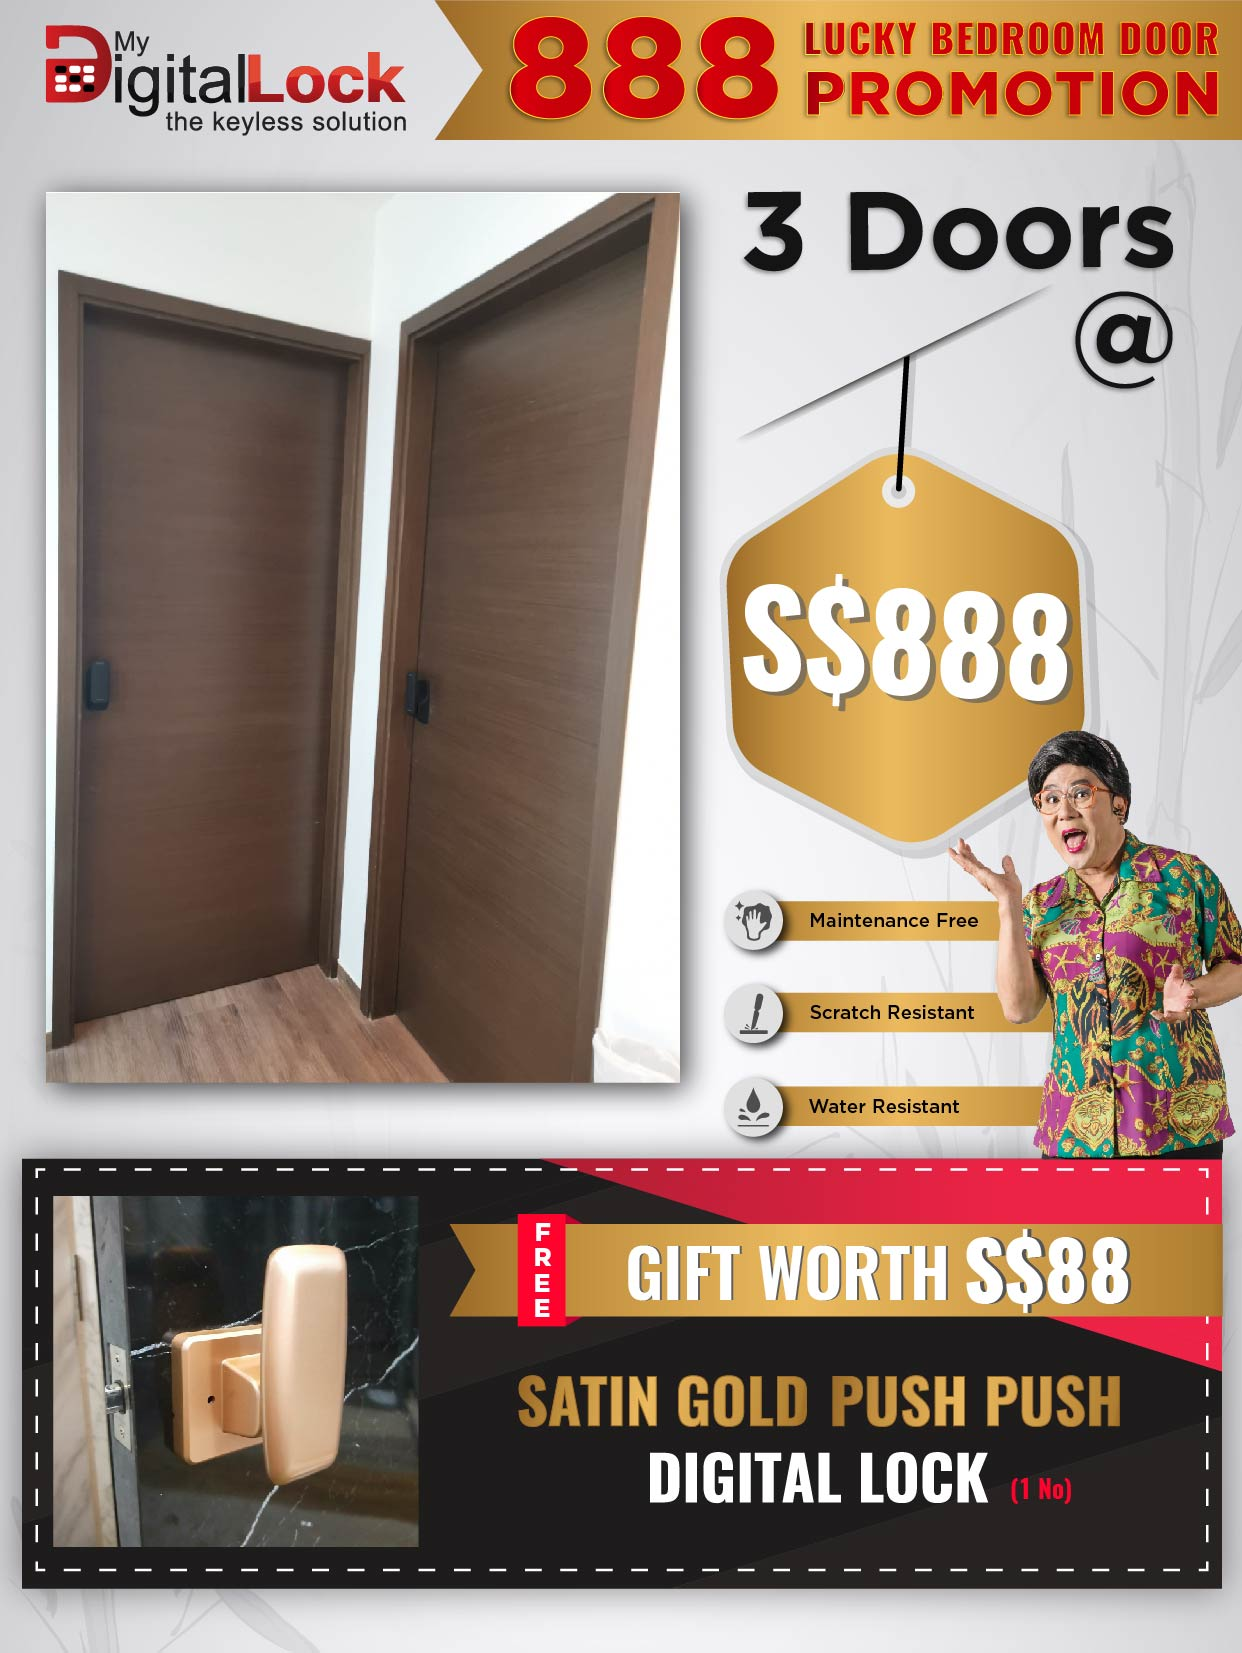 hdb bedroom door - Satin_Gold_Push_Push_Digital_Lock